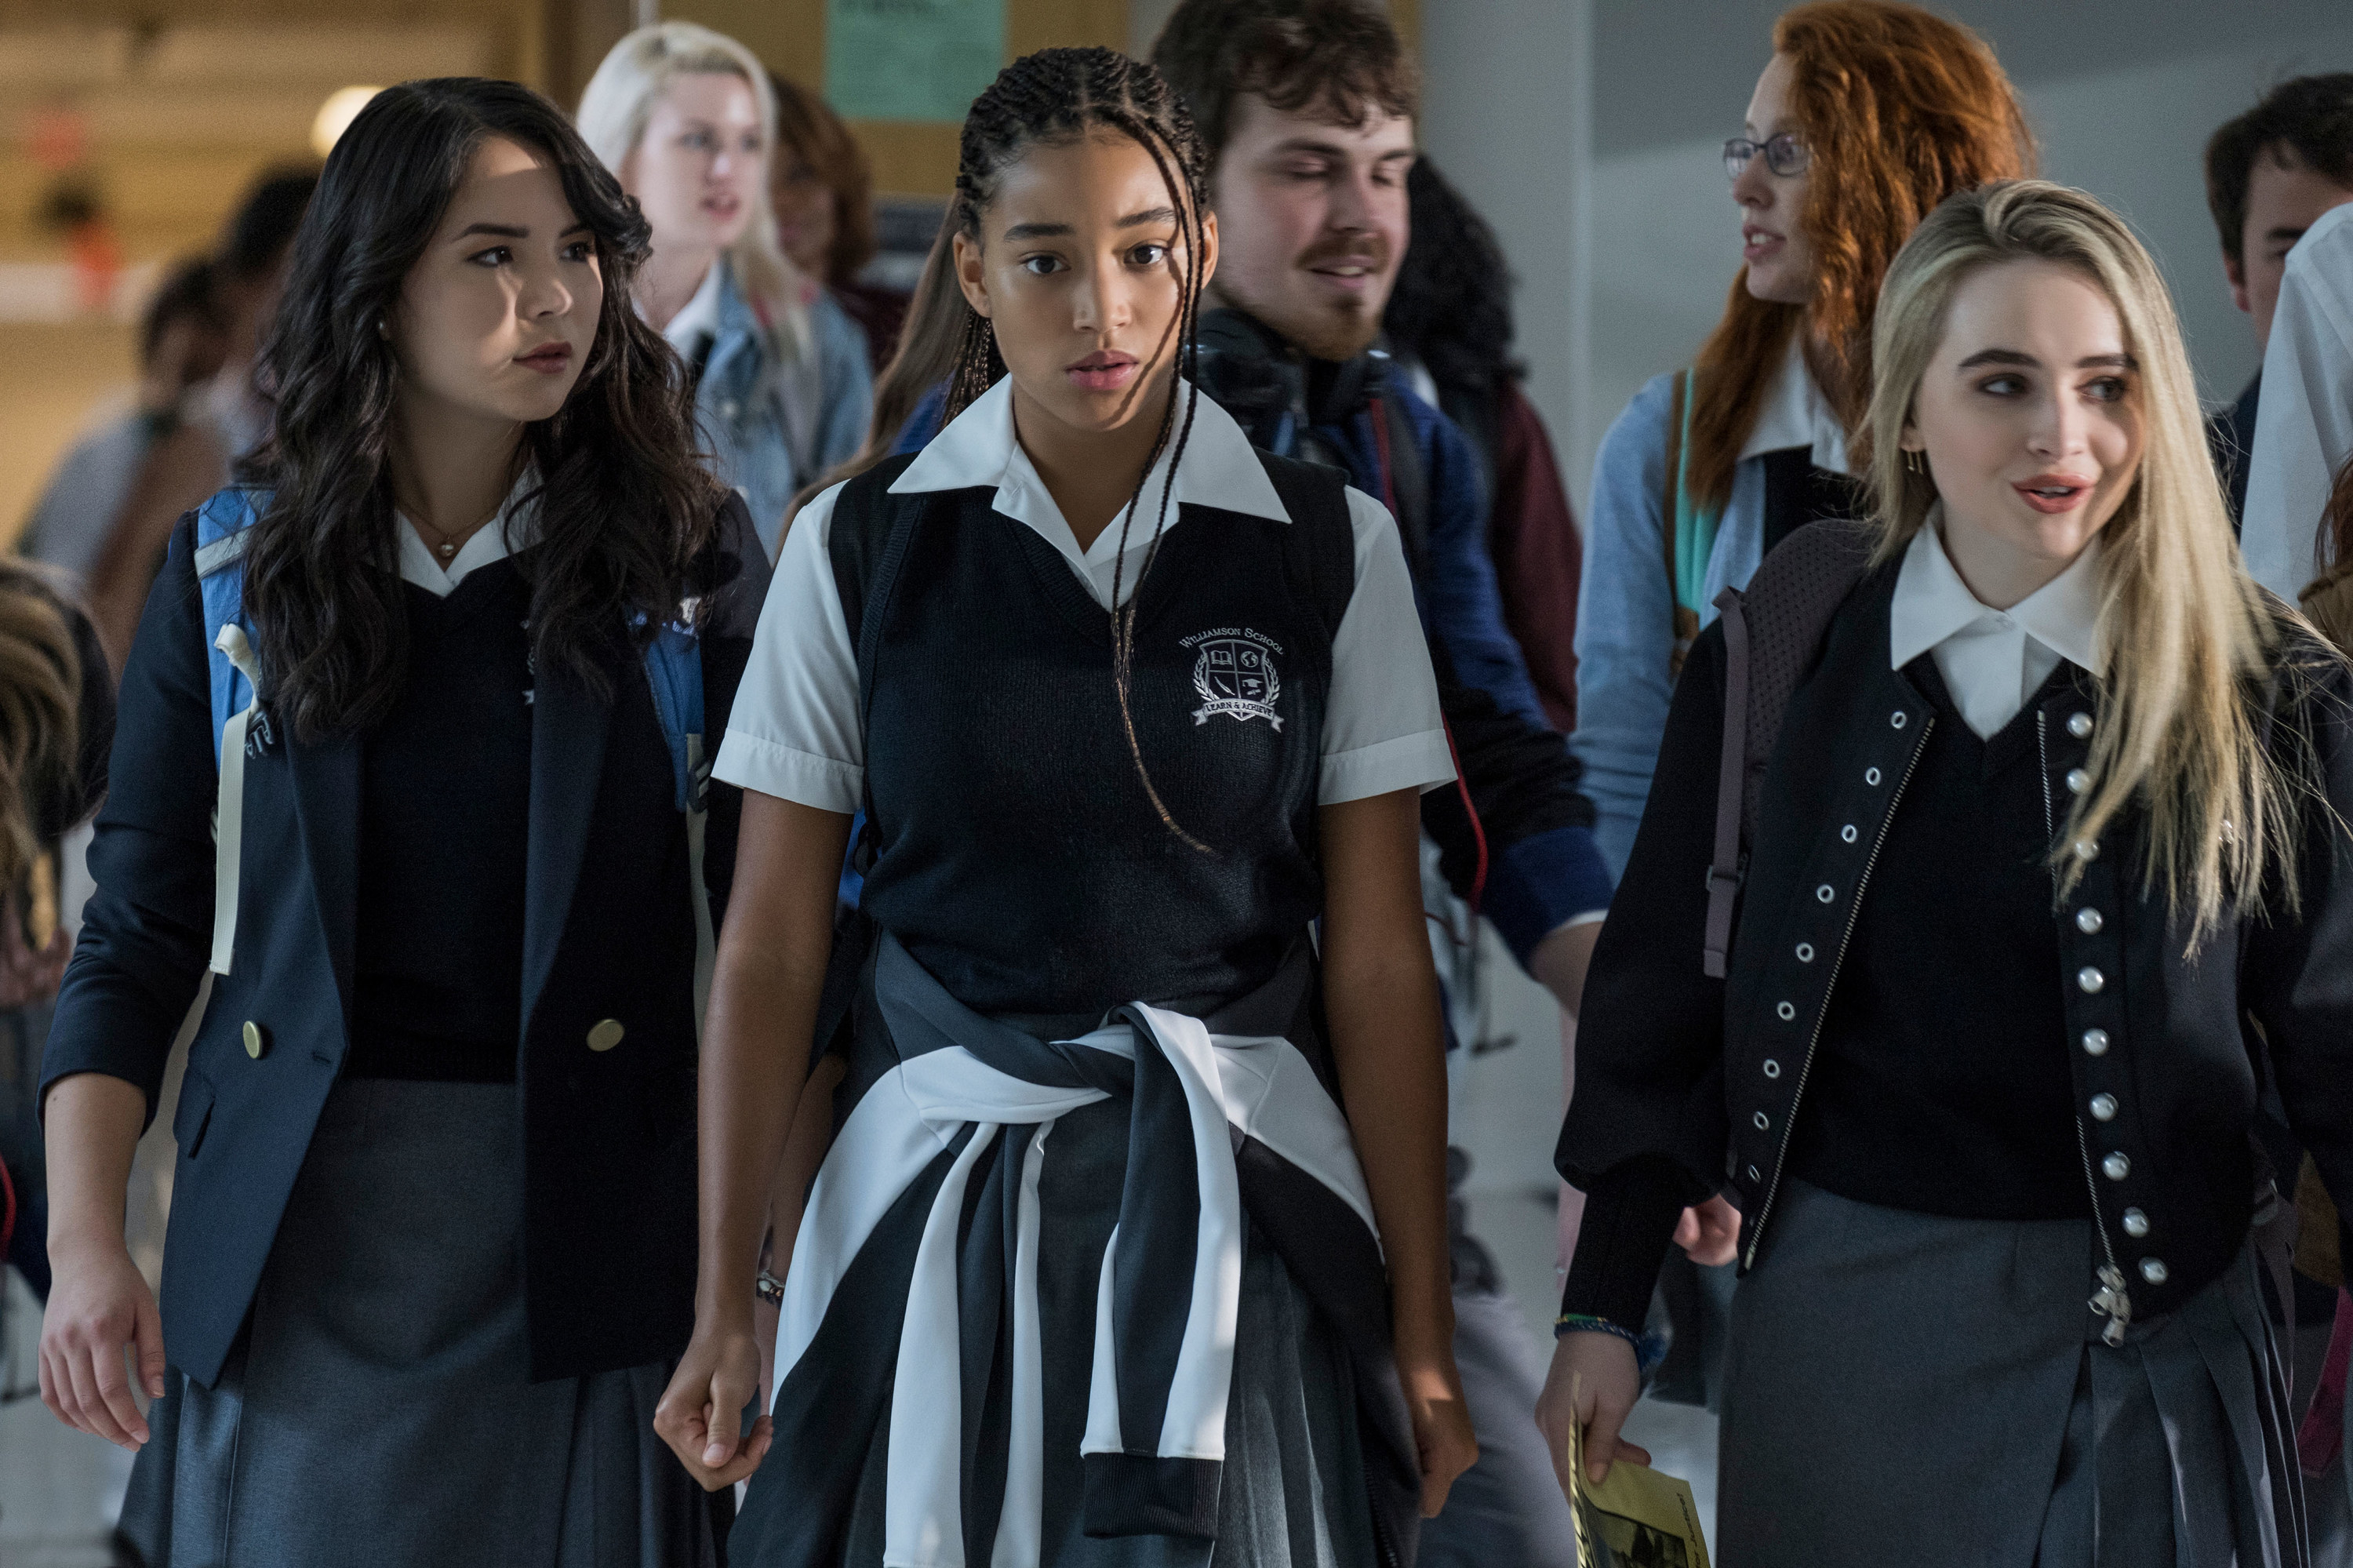 still image from the movie the hate you give in the still is megan lawless, amandla stenberg and sabrina carpenter walking in school